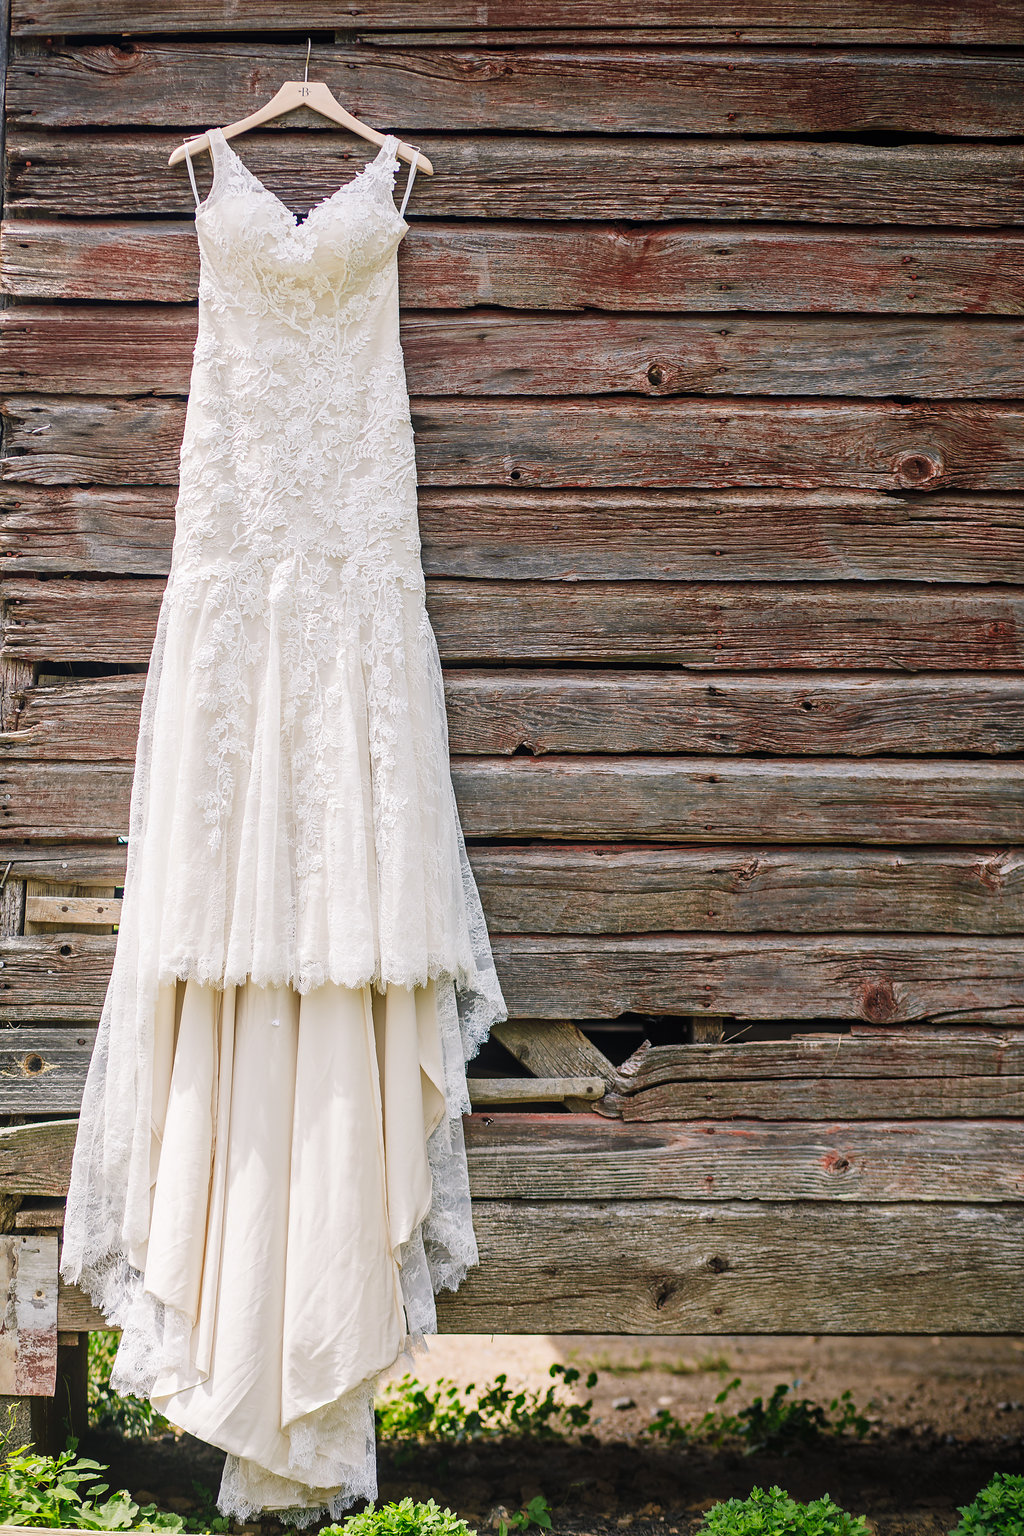 brielle-davis-events-photography-by-brea-linganore-winery-james-sarah-wedding-dress.jpg